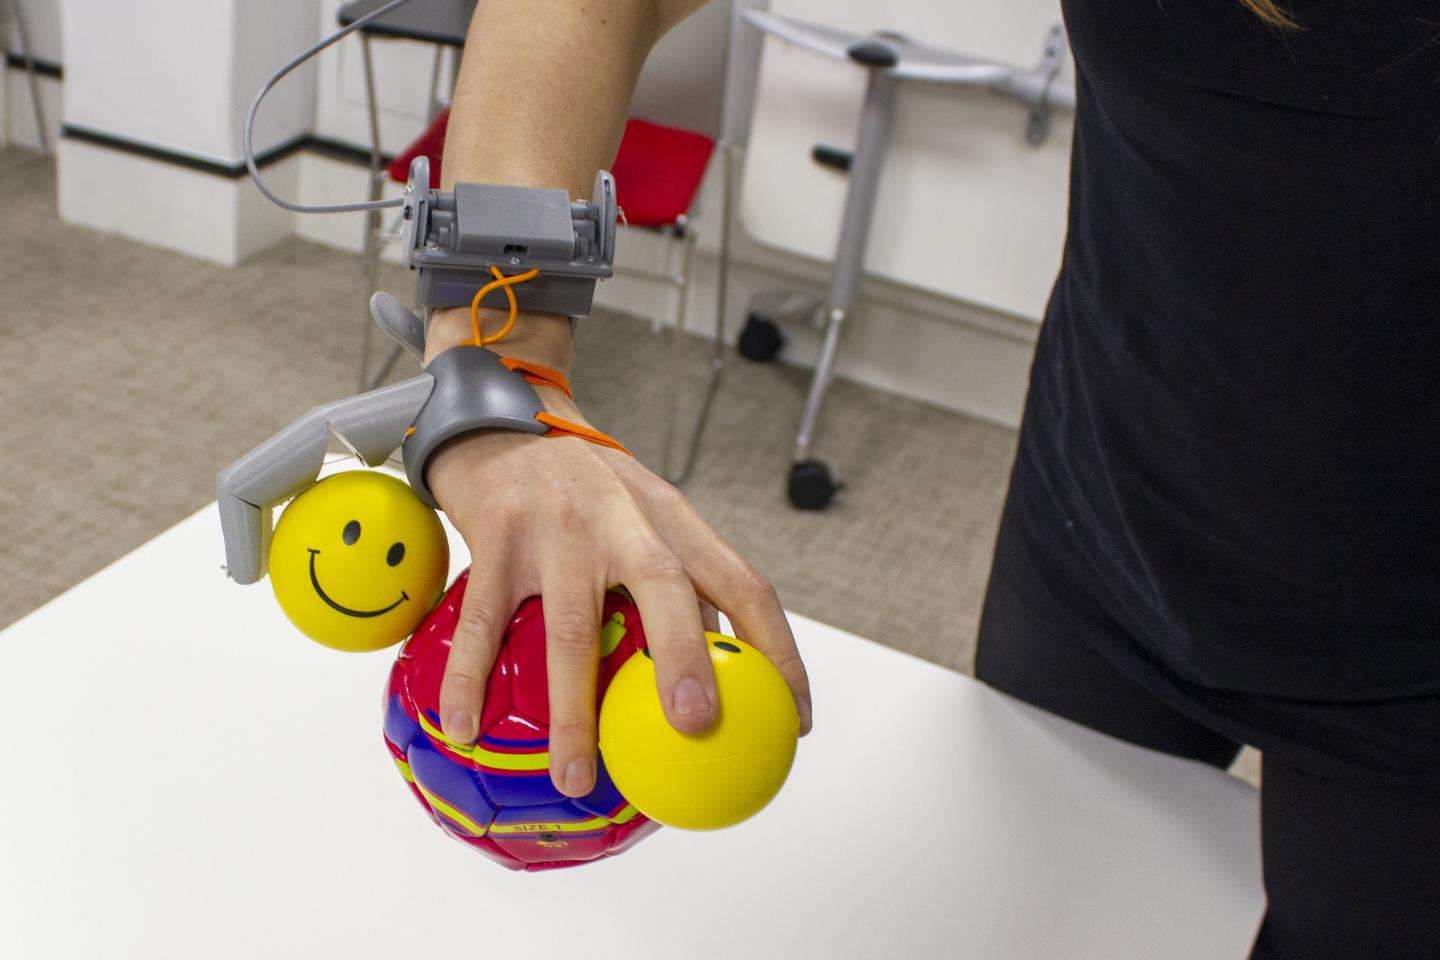 a white arm with the additional thumb prosthetic attached, allowing the user to carry a large and small ball in their main hand and holding an additional small ball thanks to the extra thumb